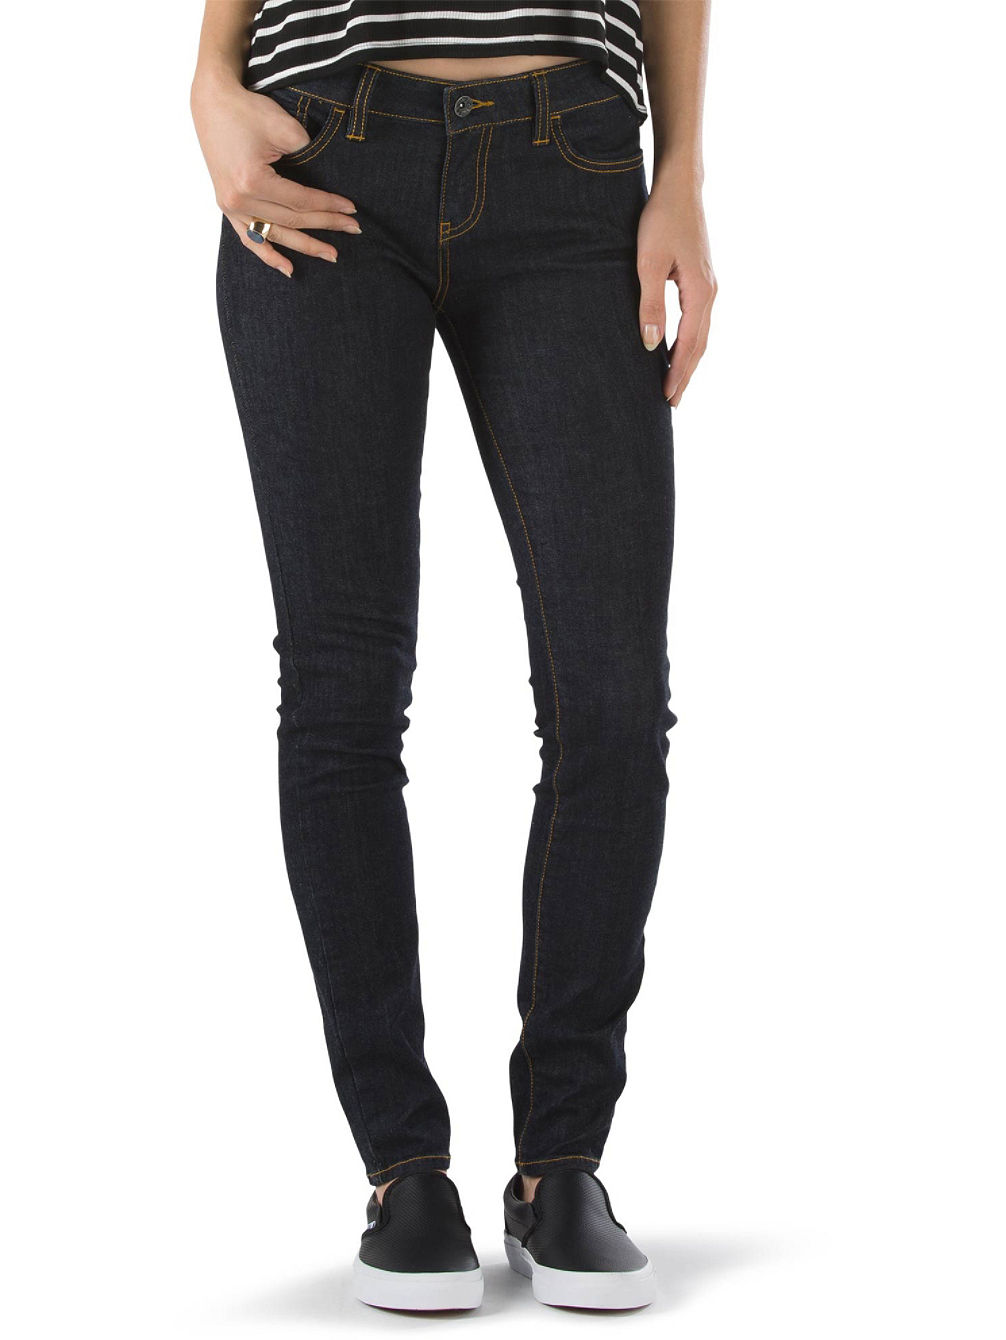 Find the best selection of cheap skinny jeans in bulk here at 0549sahibi.tk Including designer blue jeans wholesale and jeans series at wholesale prices from skinny jeans manufacturers. Source discount and high quality products in hundreds of categories wholesale direct from China.